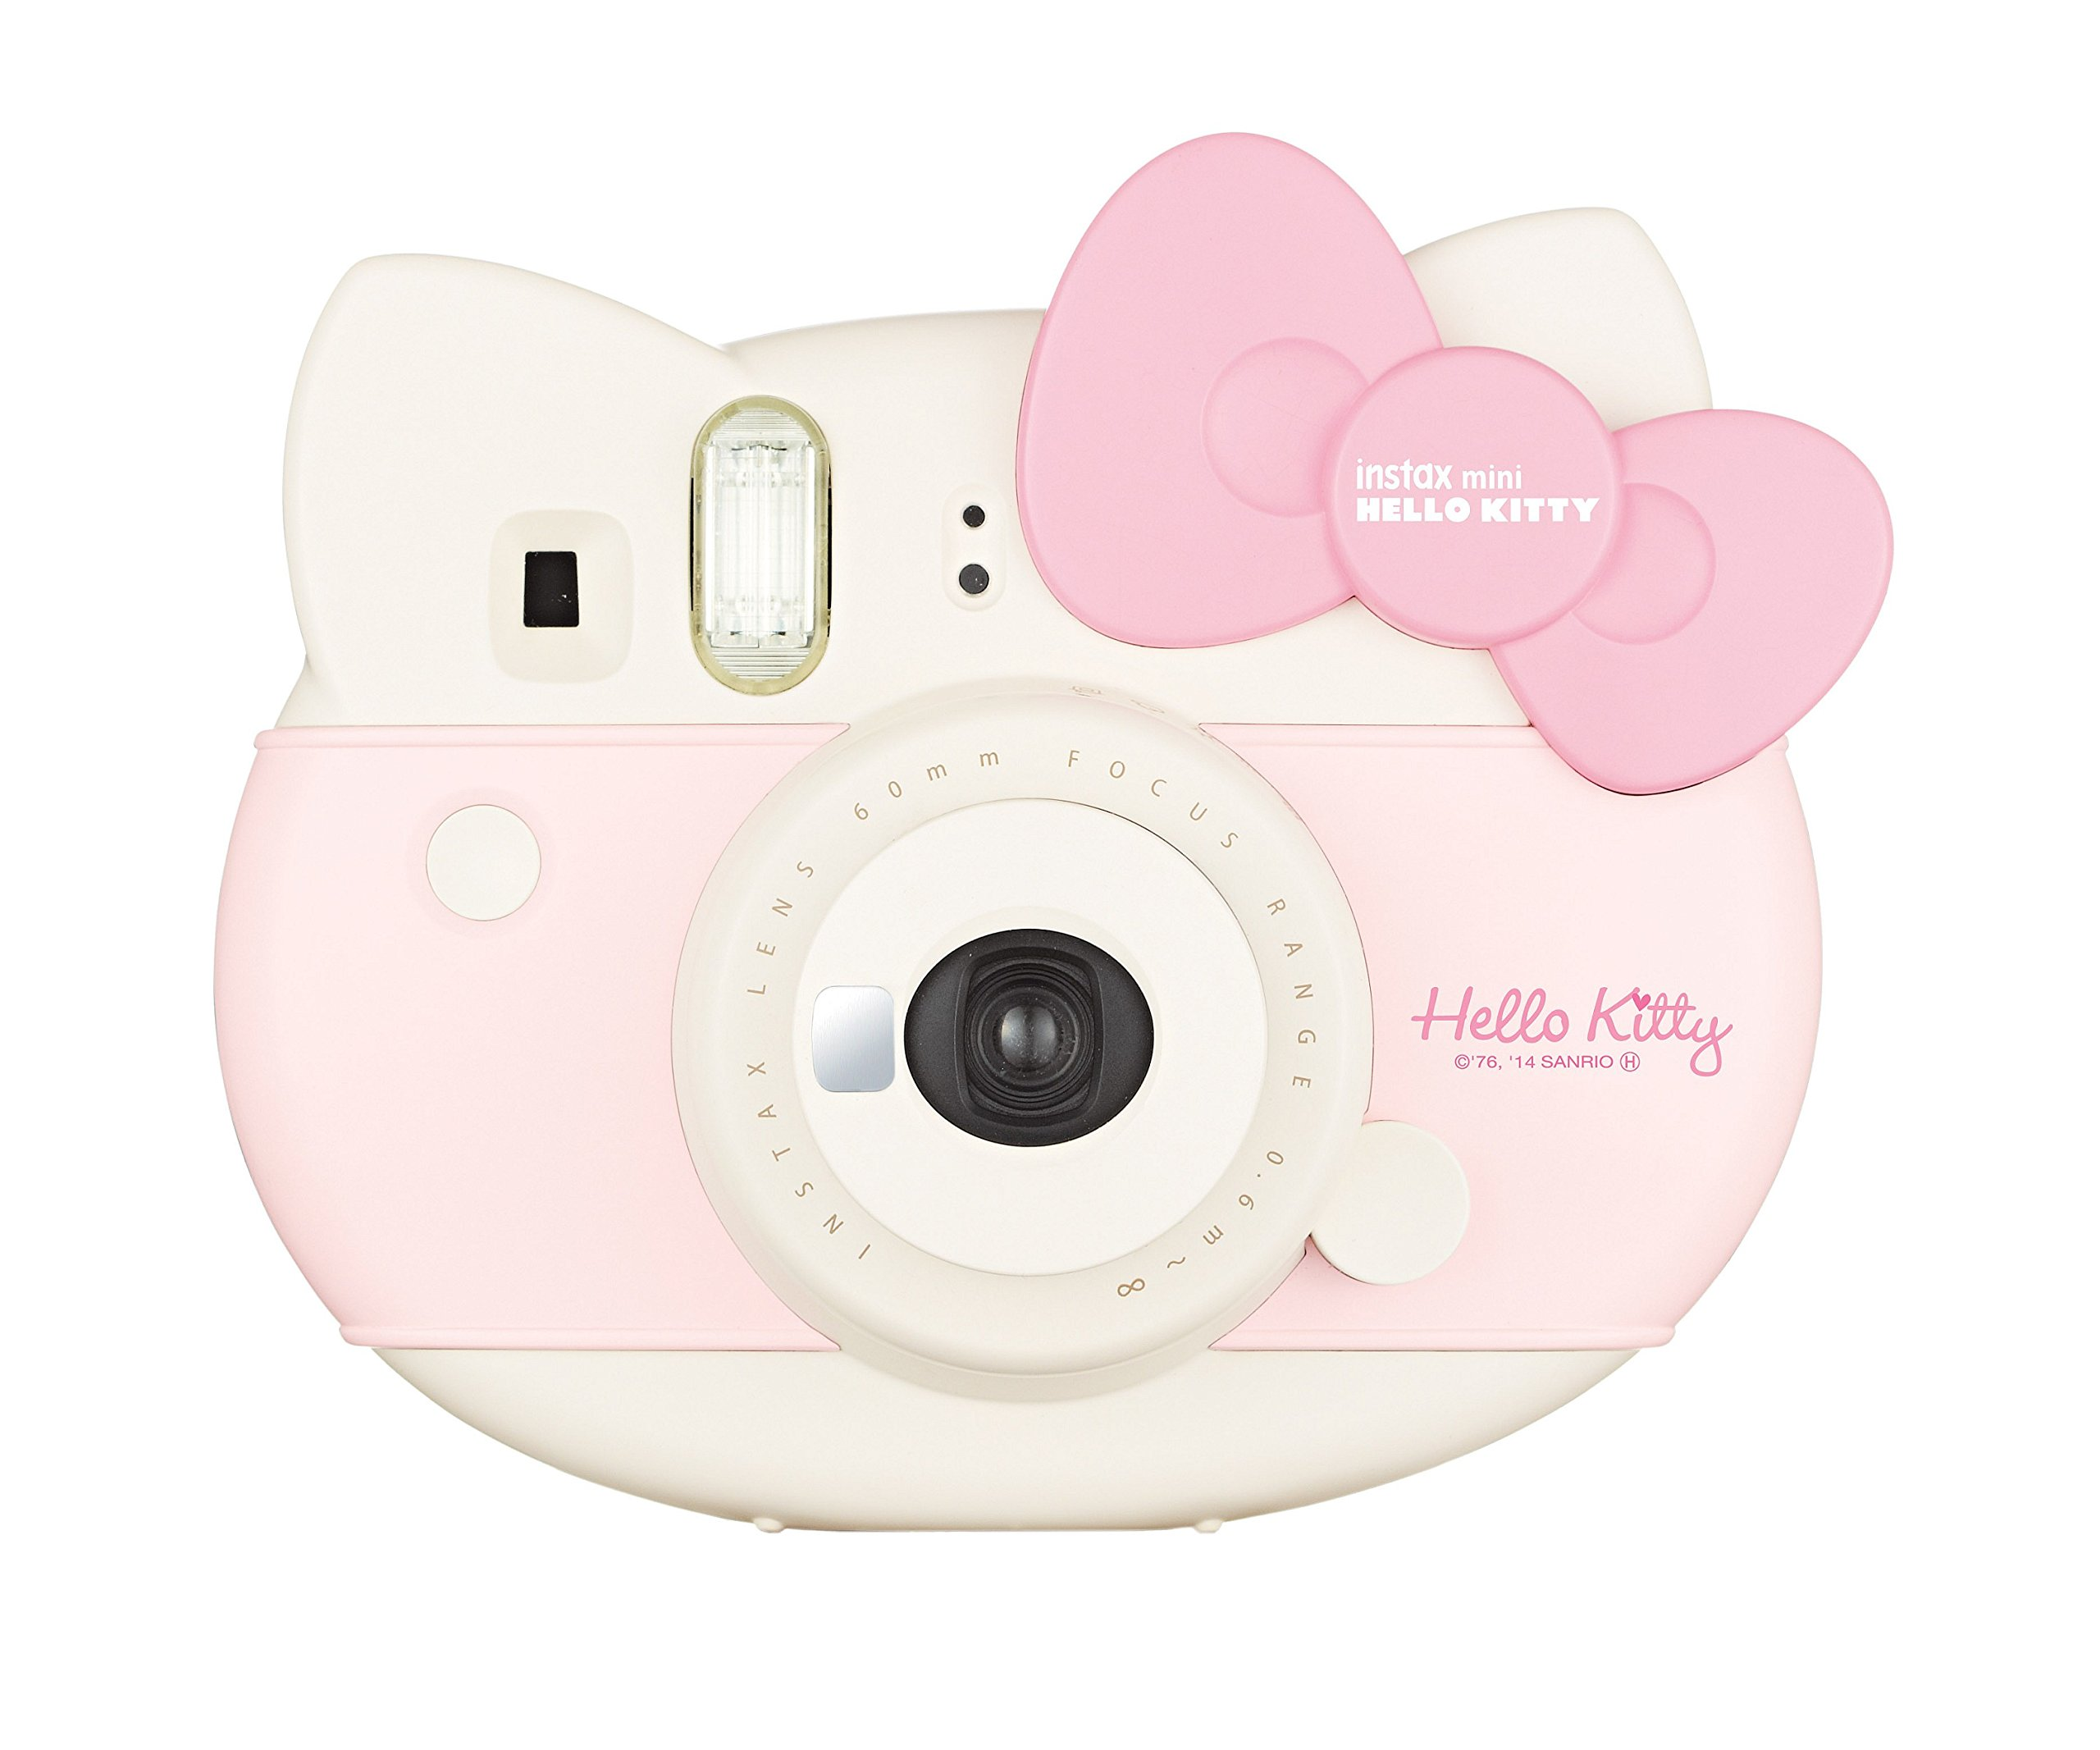 ویکالا · خرید  اصل اورجینال · خرید از آمازون · Fujifilm Instax Hello Kitty Instant Film Camera (Pink) - International Version wekala · ویکالا